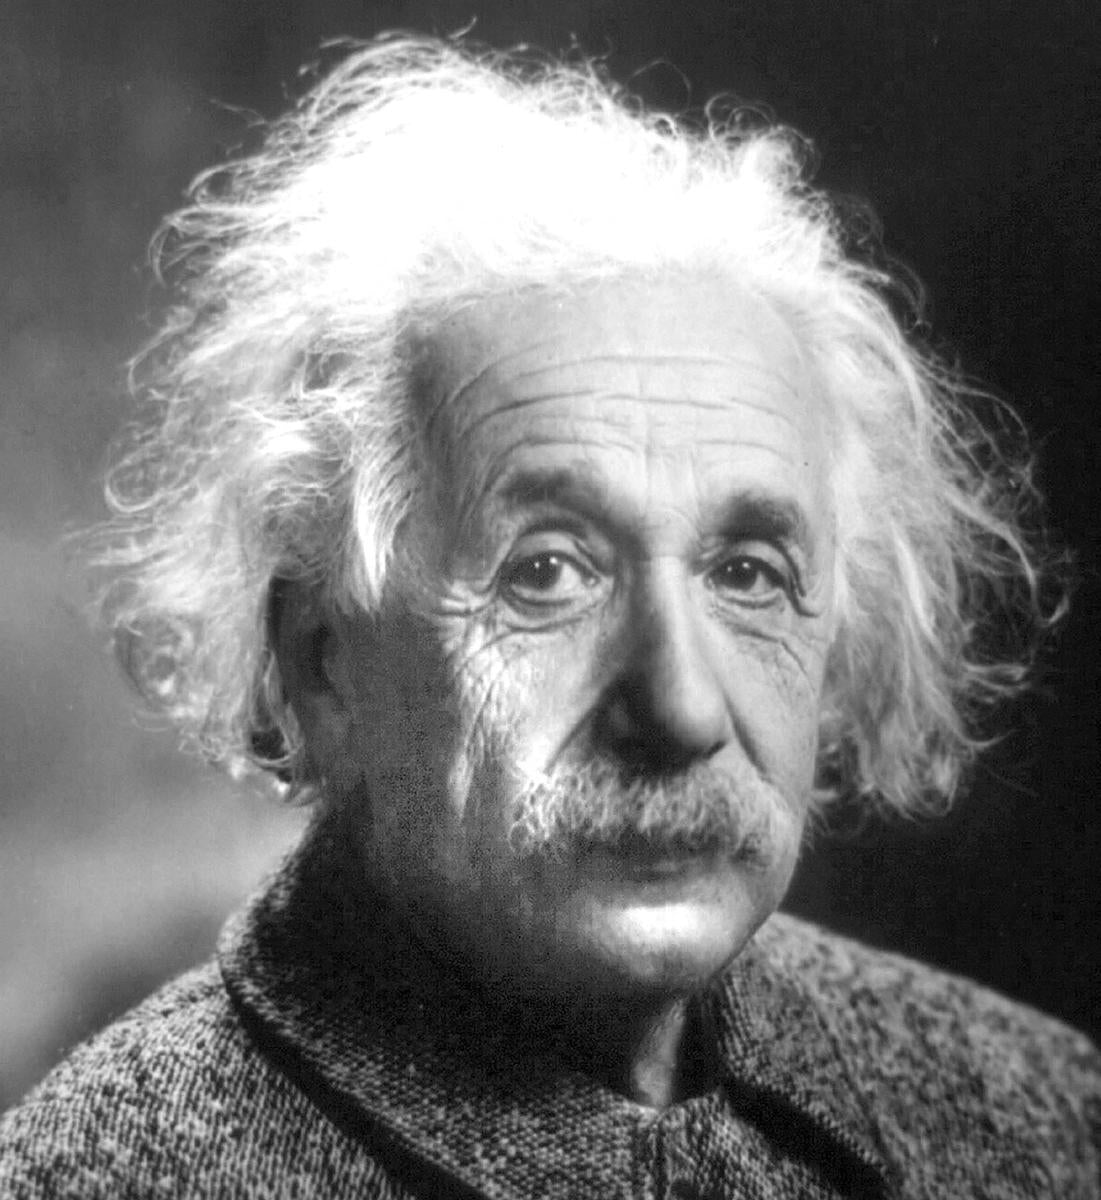 Albert Einstein may have been had Autism Spectrum Disorder